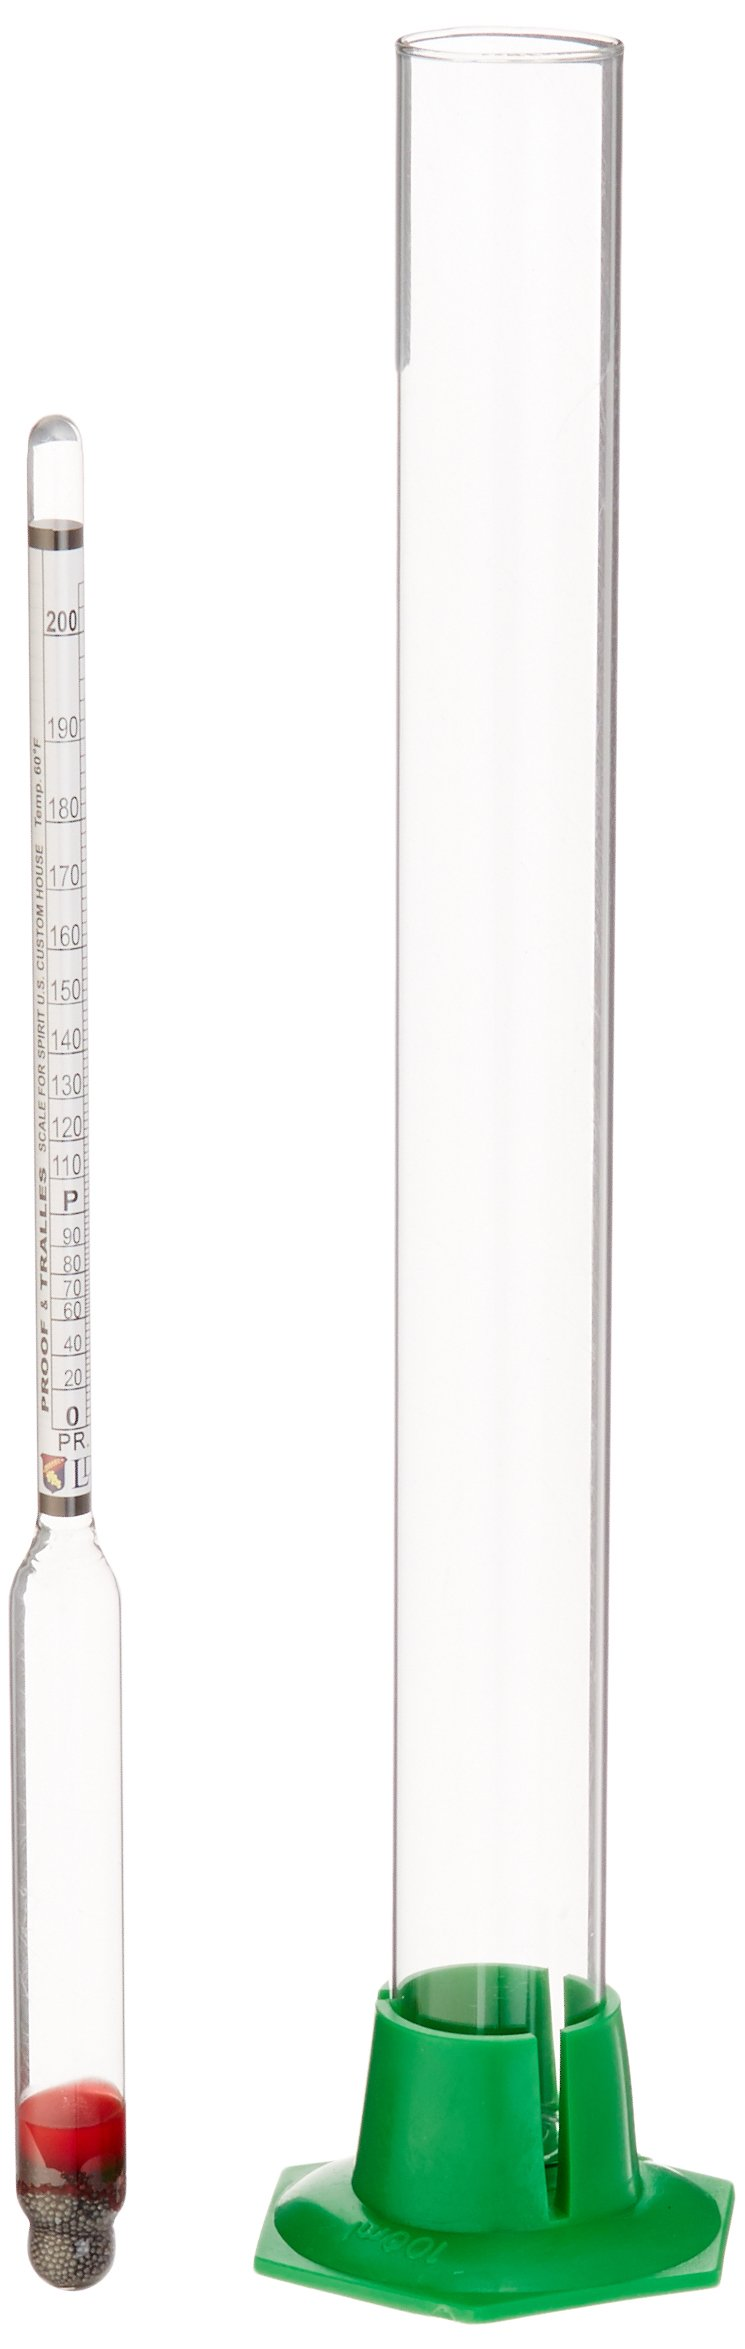 Naruekrit R3-XIKQ-AD0G Proof and Tralle Hydrometer with 12' Glass Test Jar by Naruekrit